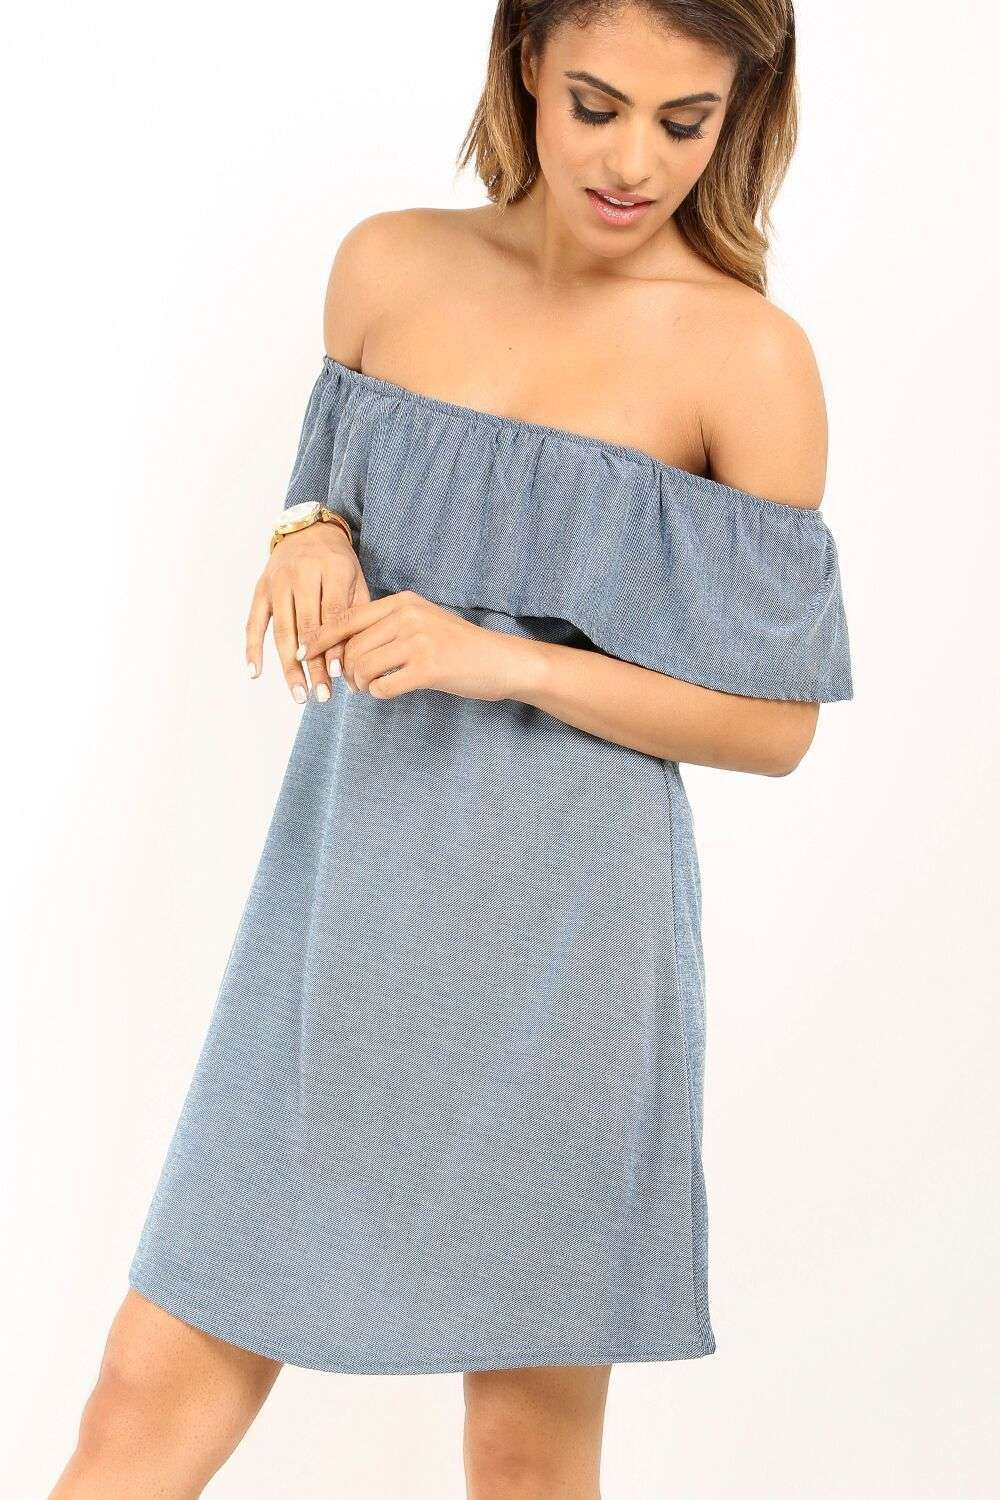 Zara Off Shoulder Frill Dress - bejealous-com